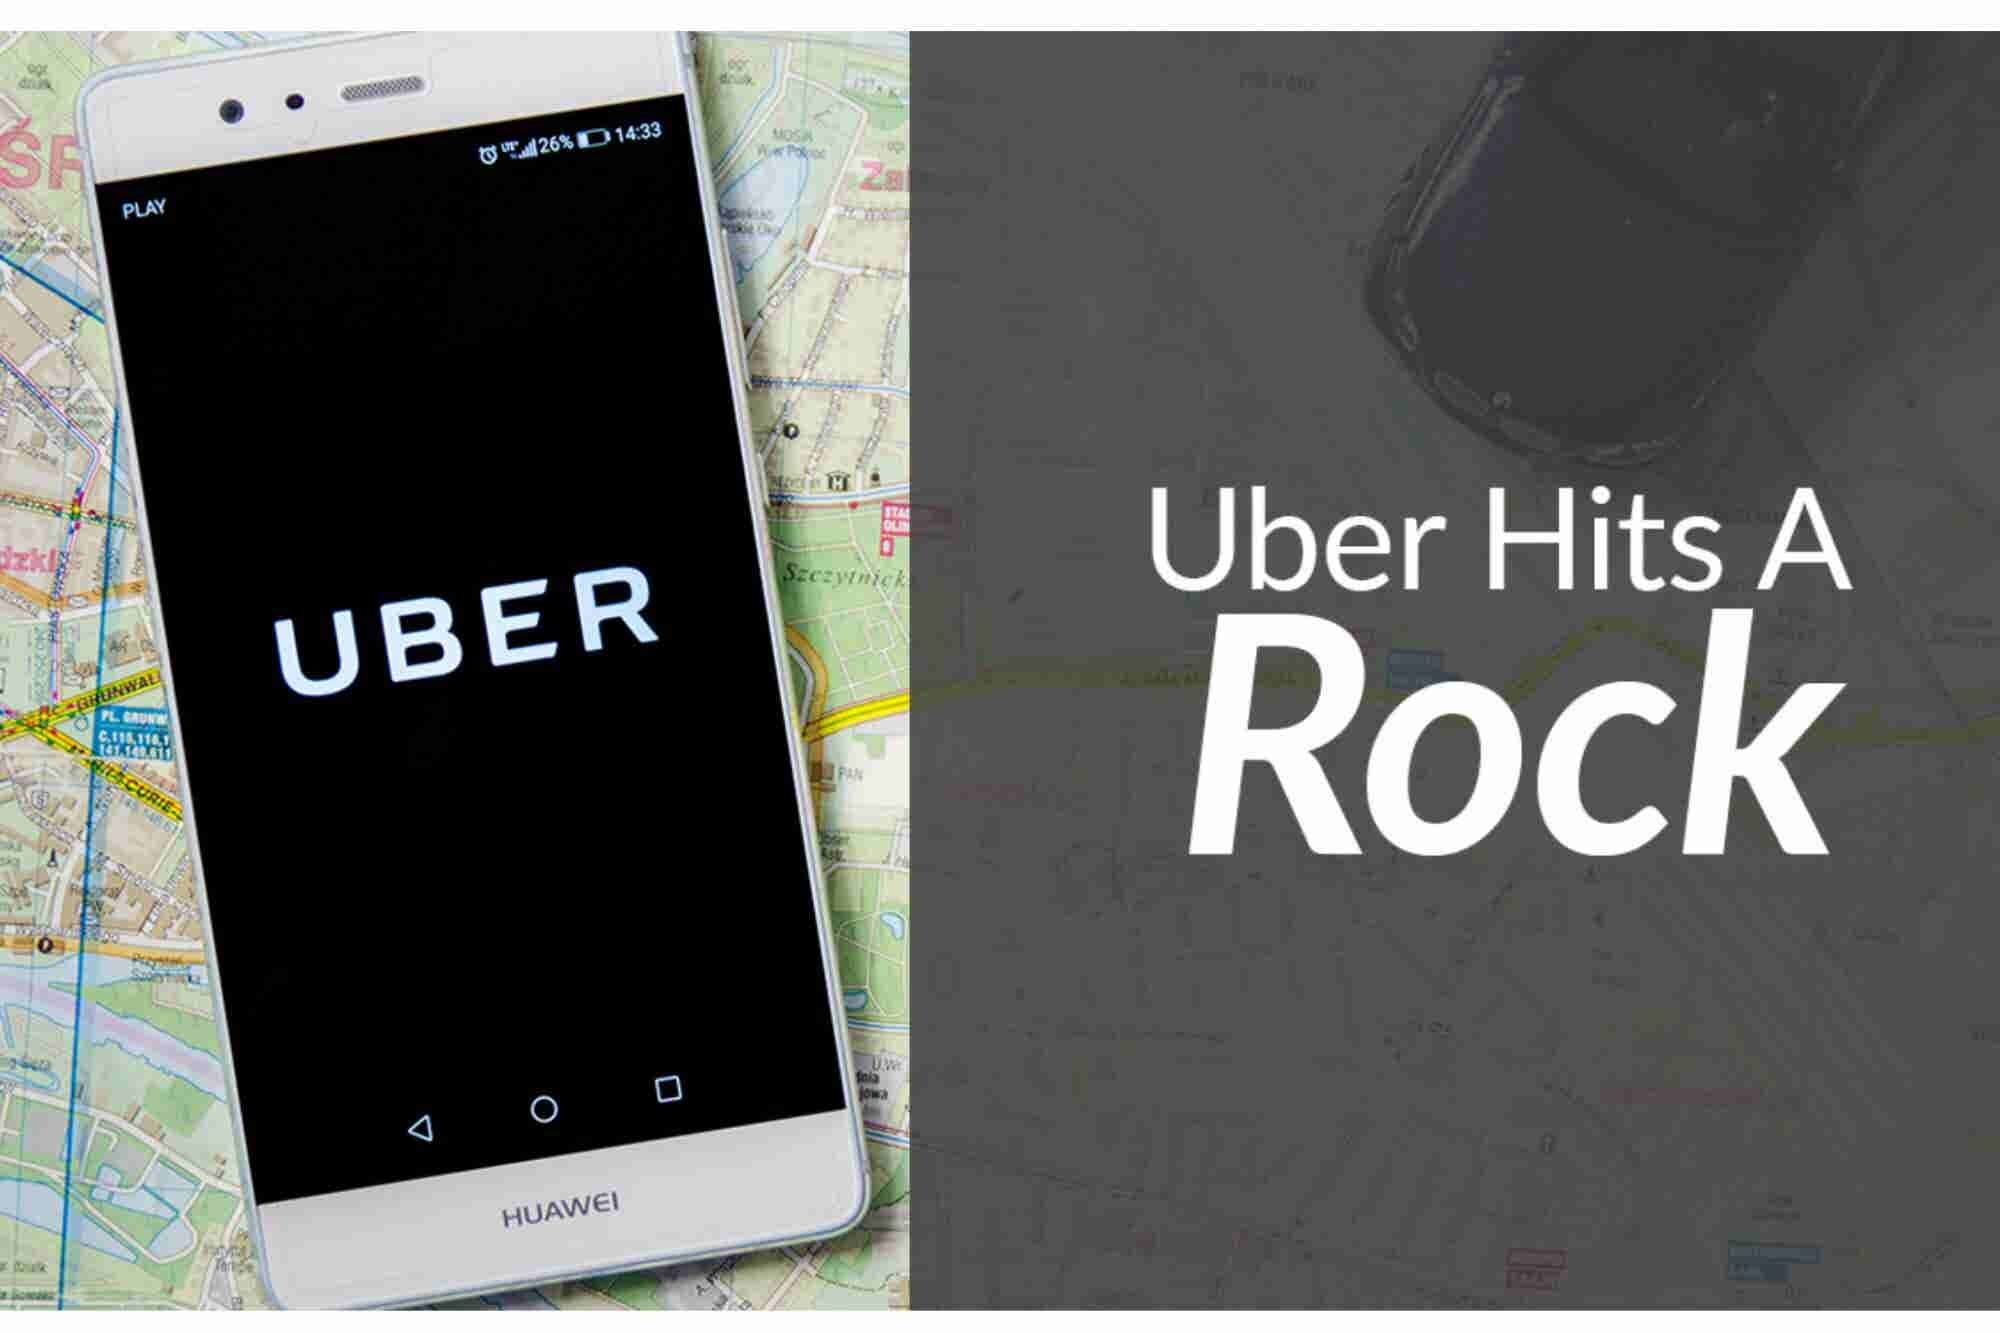 Uber Loses Over $1 Billion & Netflix Works on Cheaper Plan for Asia: 4 Things to Know Today